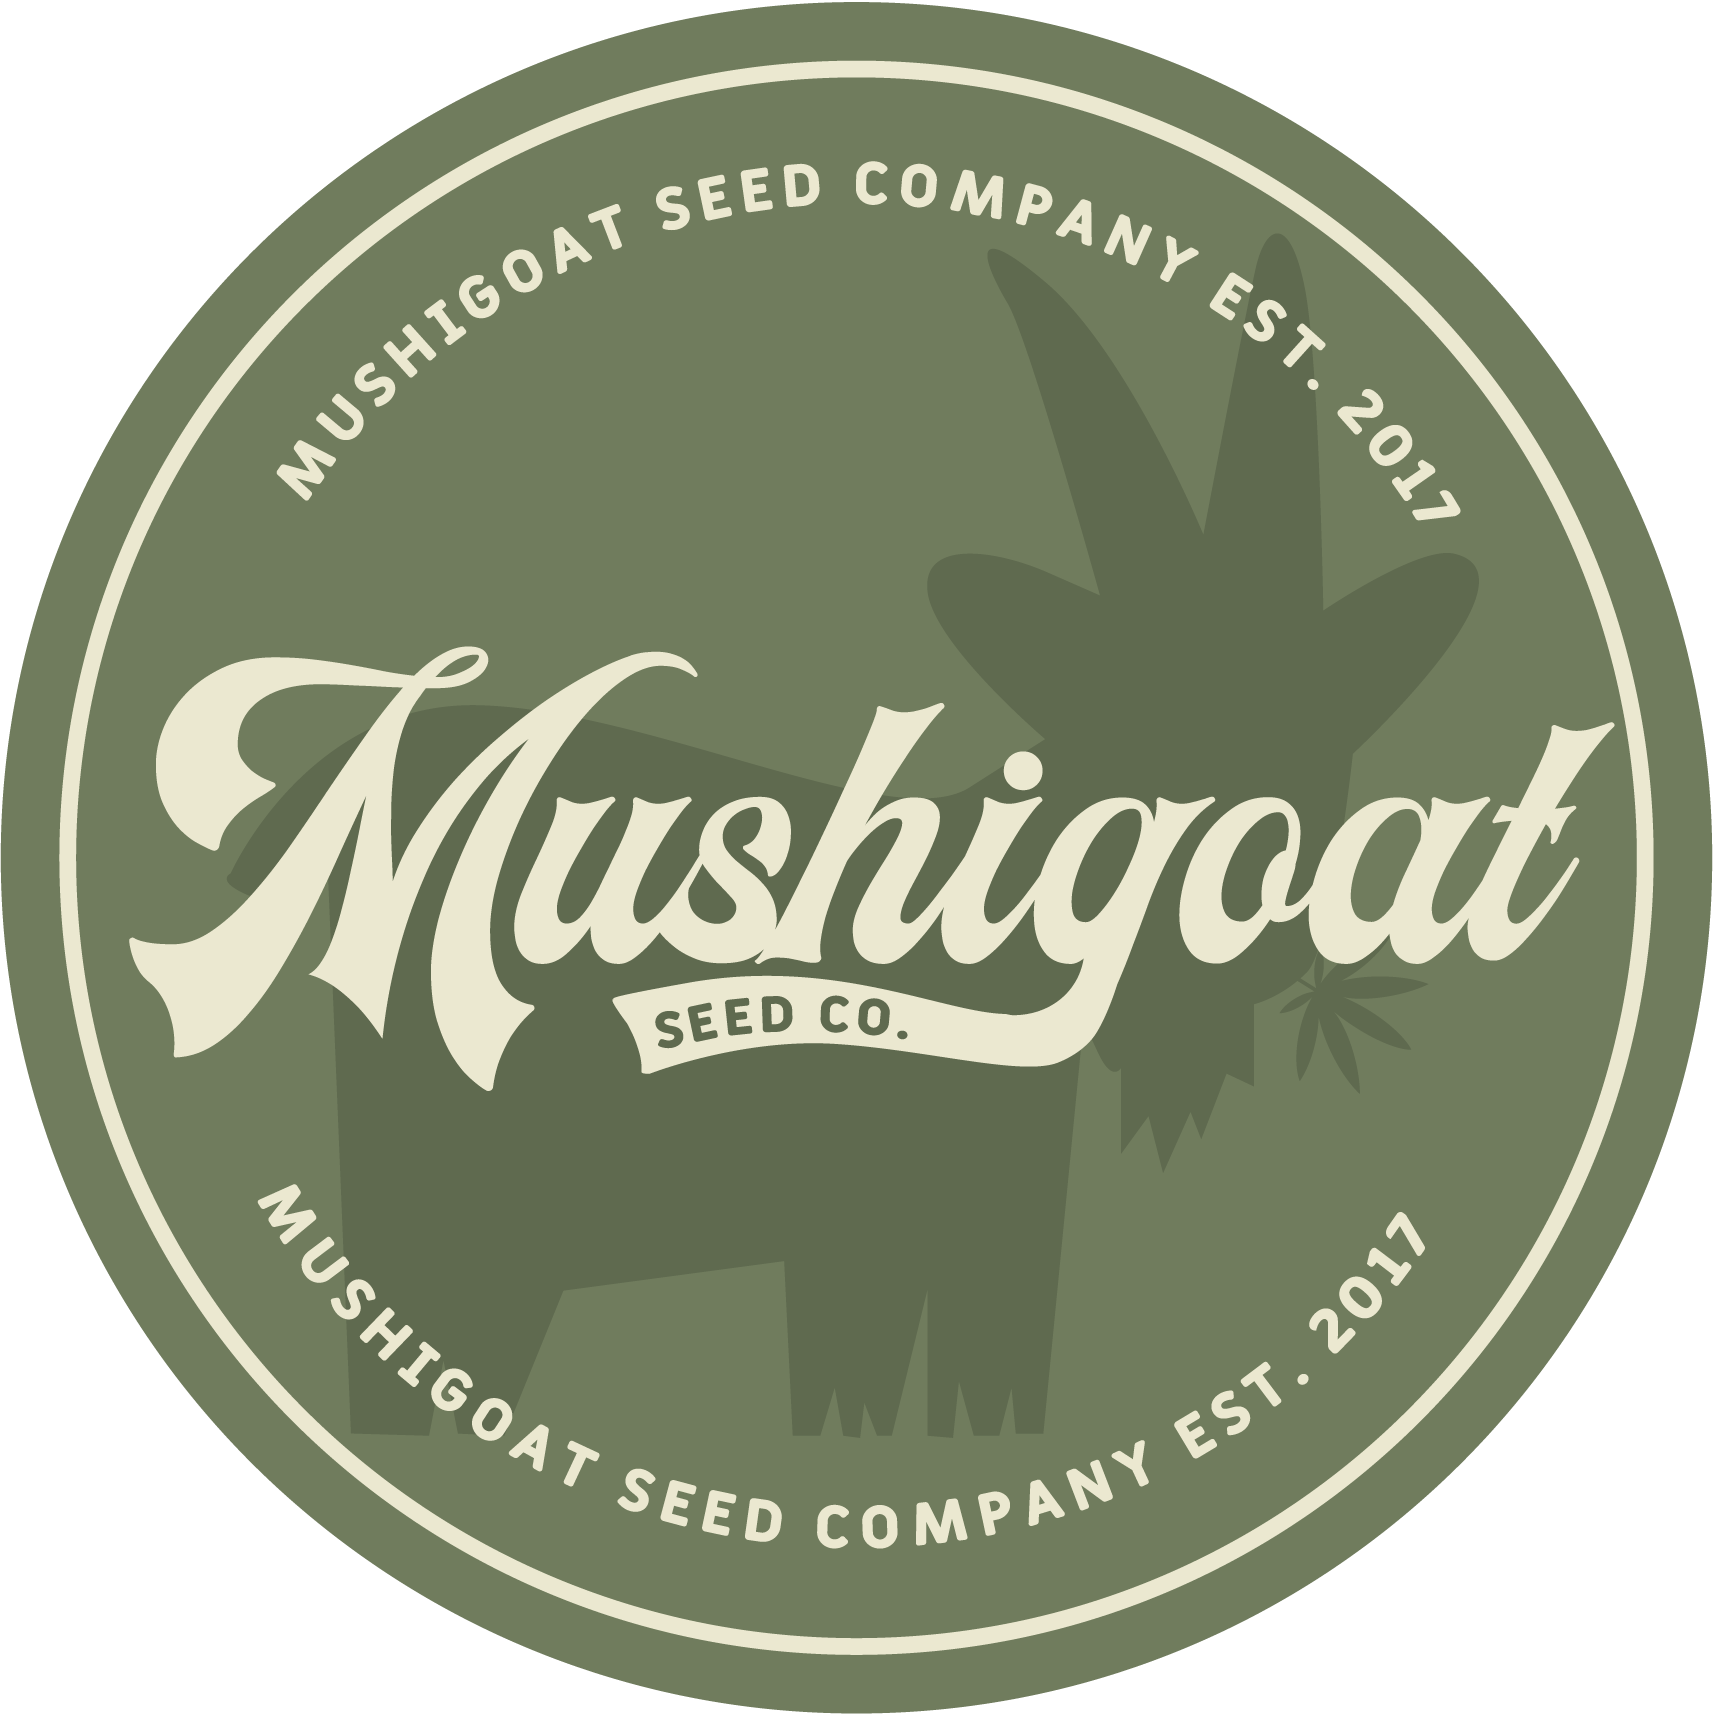 Mushigoat Seed Co.